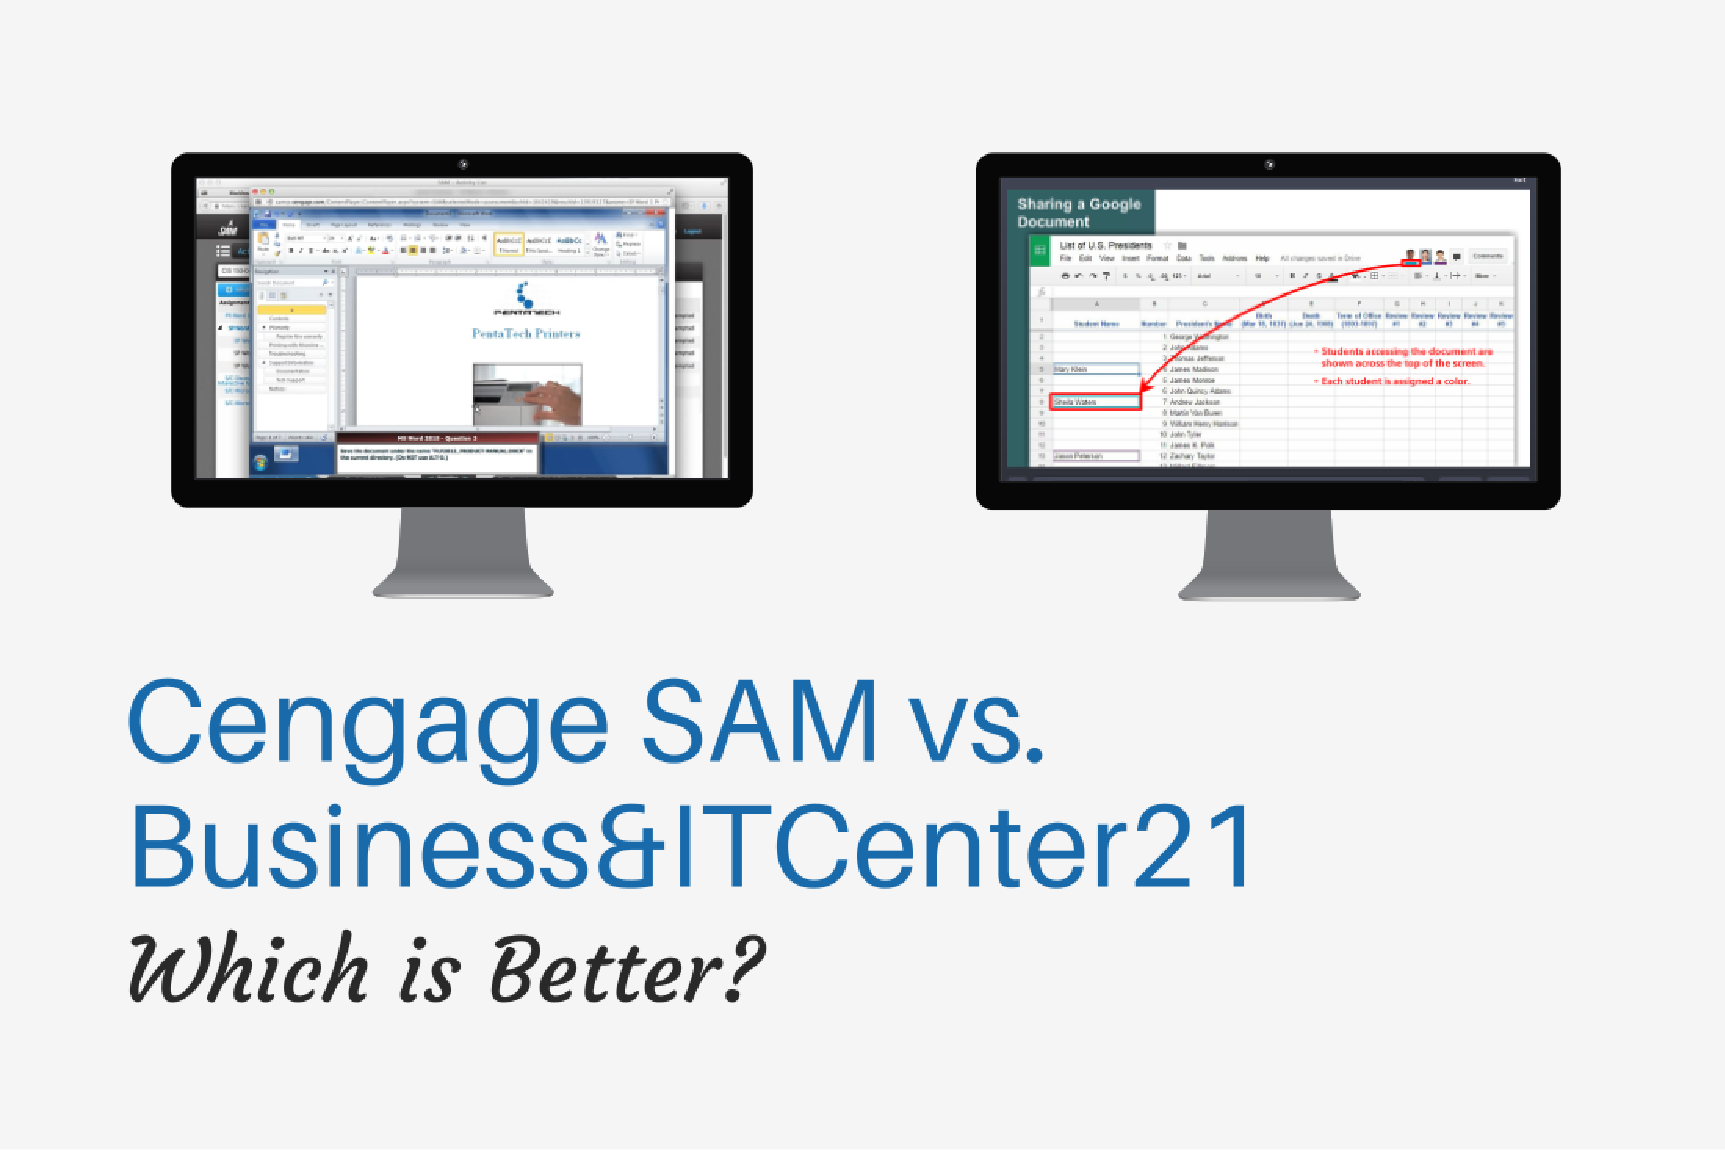 SAM Cengage vs. Business&ITCenter21: Which Is Better?